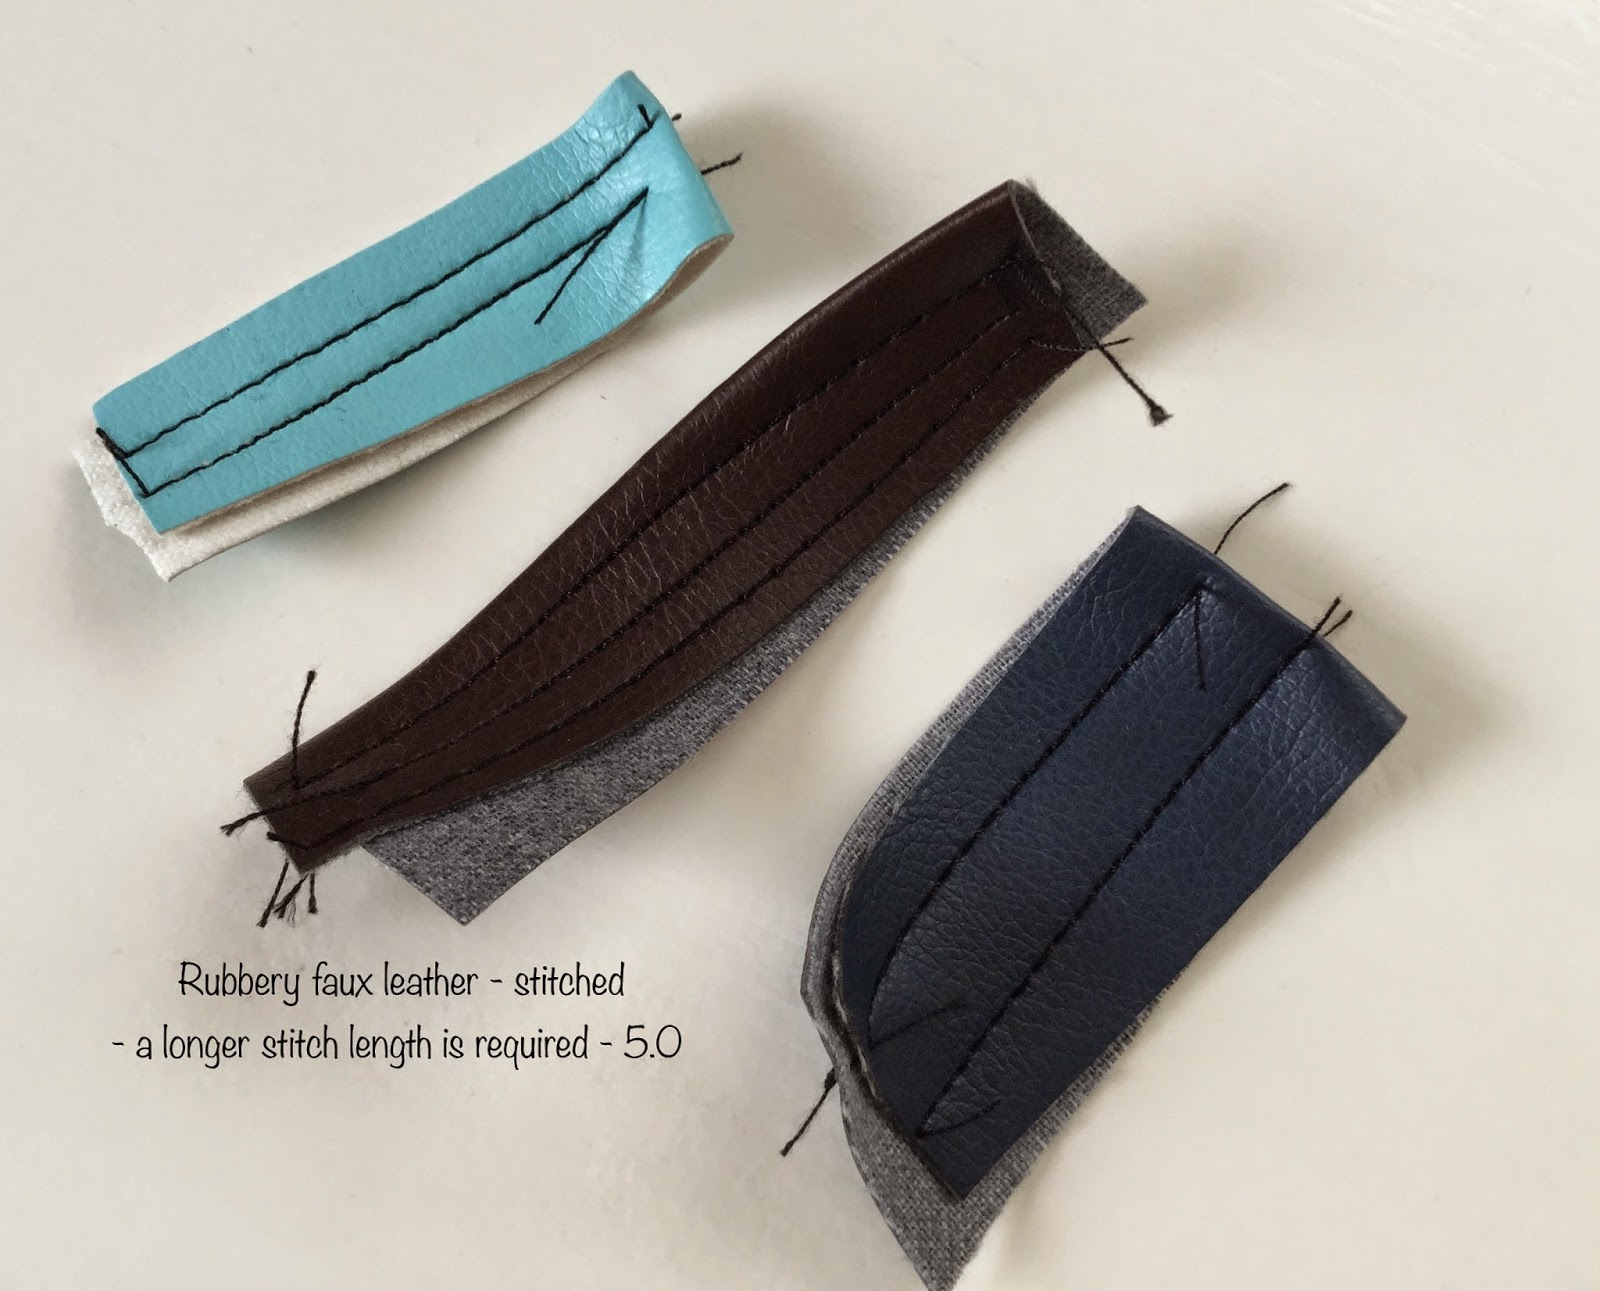 """fa1c7754 If you really have to have one of those """"headache """" kind of faux leather…try  topstitching it through a piece of wax paper."""